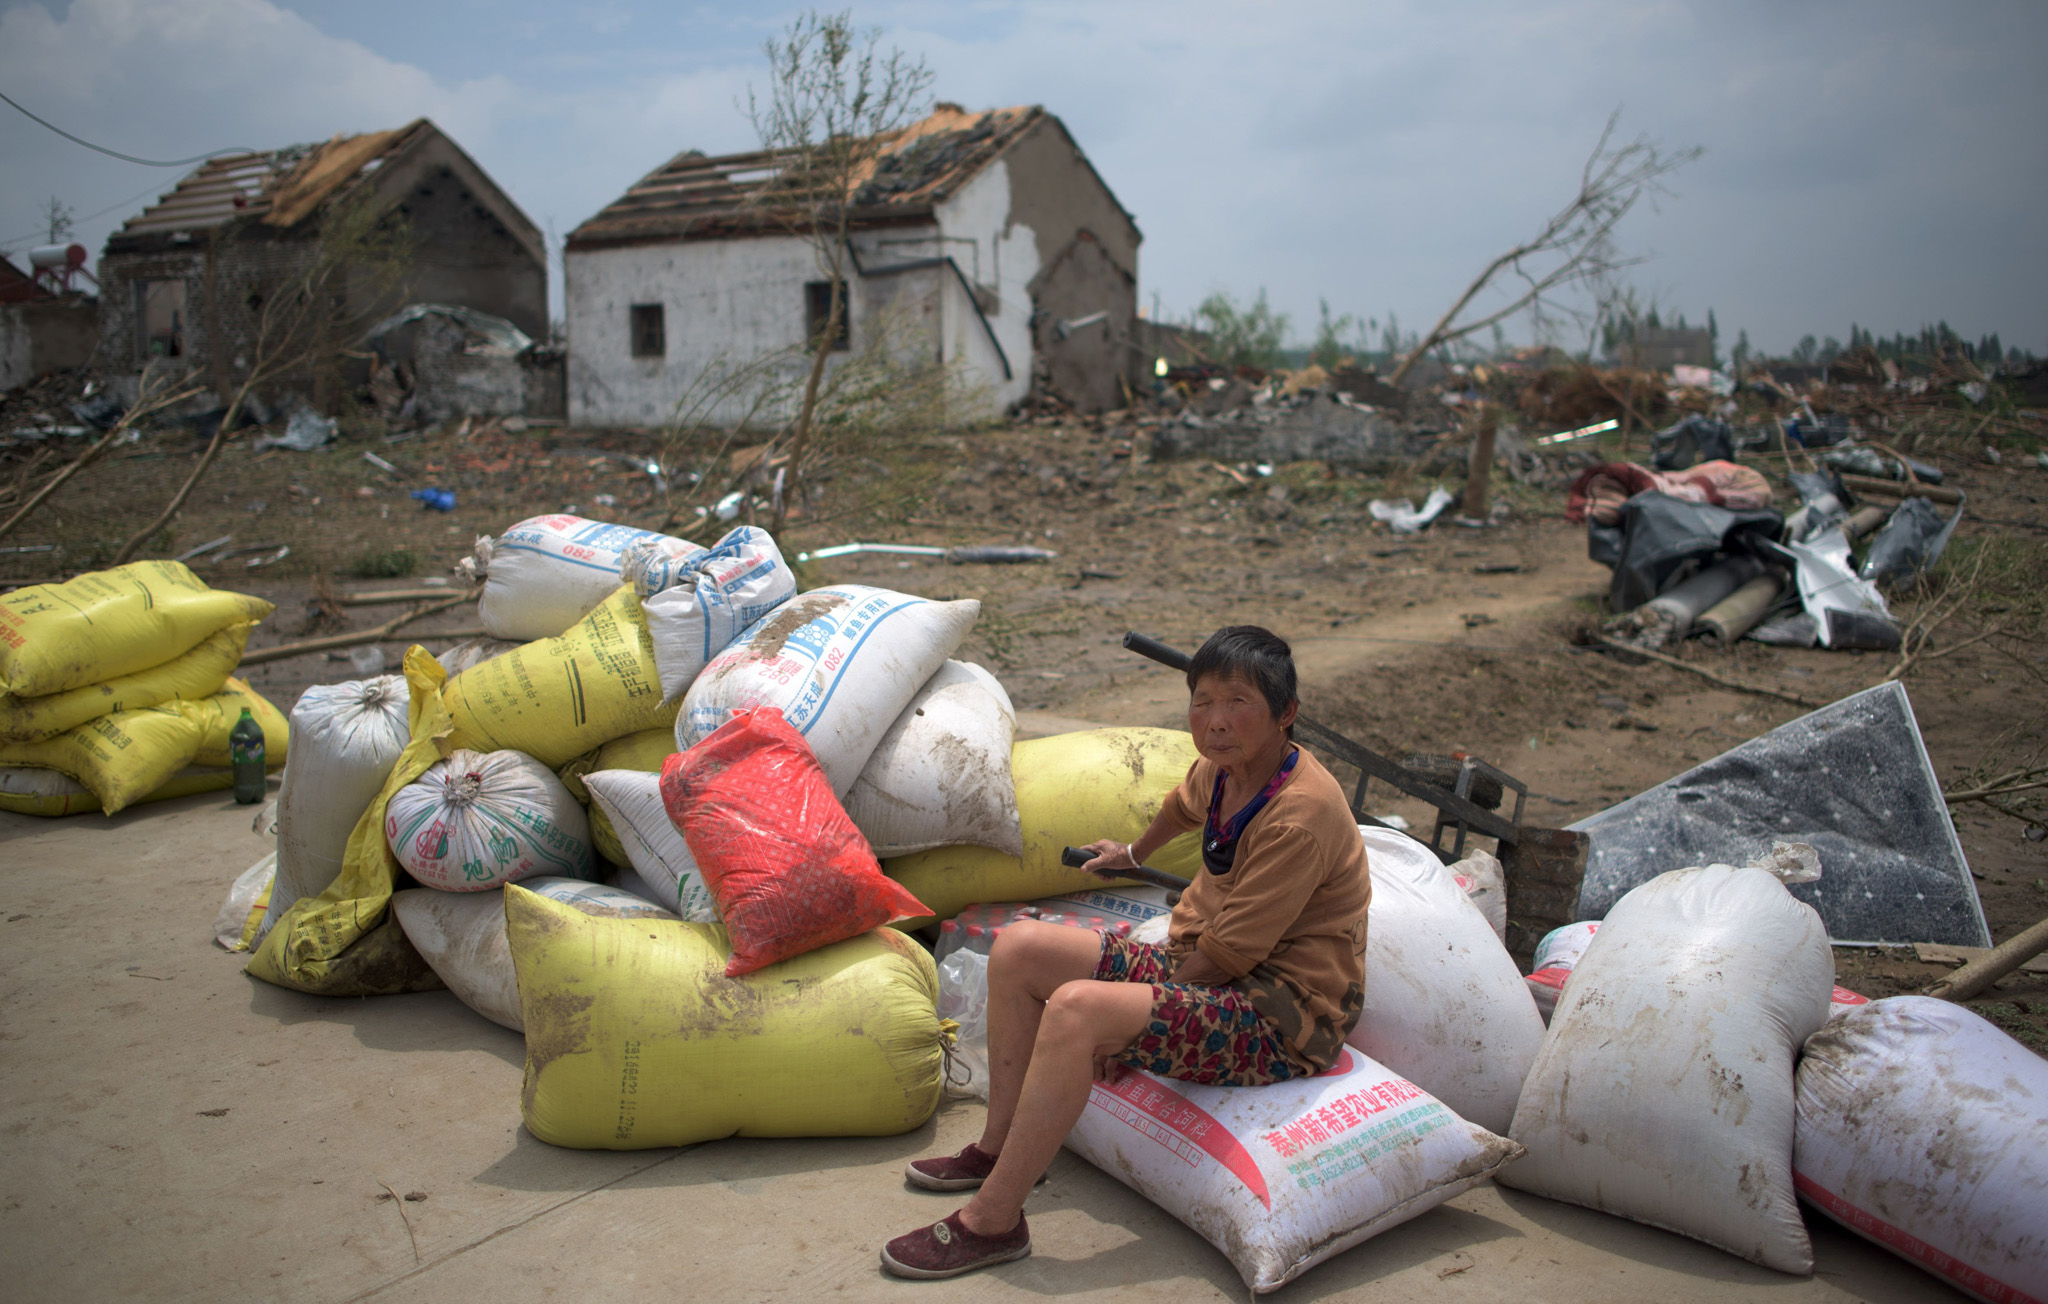 A woman sits with her belongings in front of the rubble of her destroyed houses after a tornado in Funing, in Yancheng, in China's Jiangsu province on June 24, 2016.   Extreme weather, including hailstorms, heavy rain and a tornado, killed 78 and injured dozens in China's eastern Jiangsu province, the official Xinhua news agency reported on June 23.